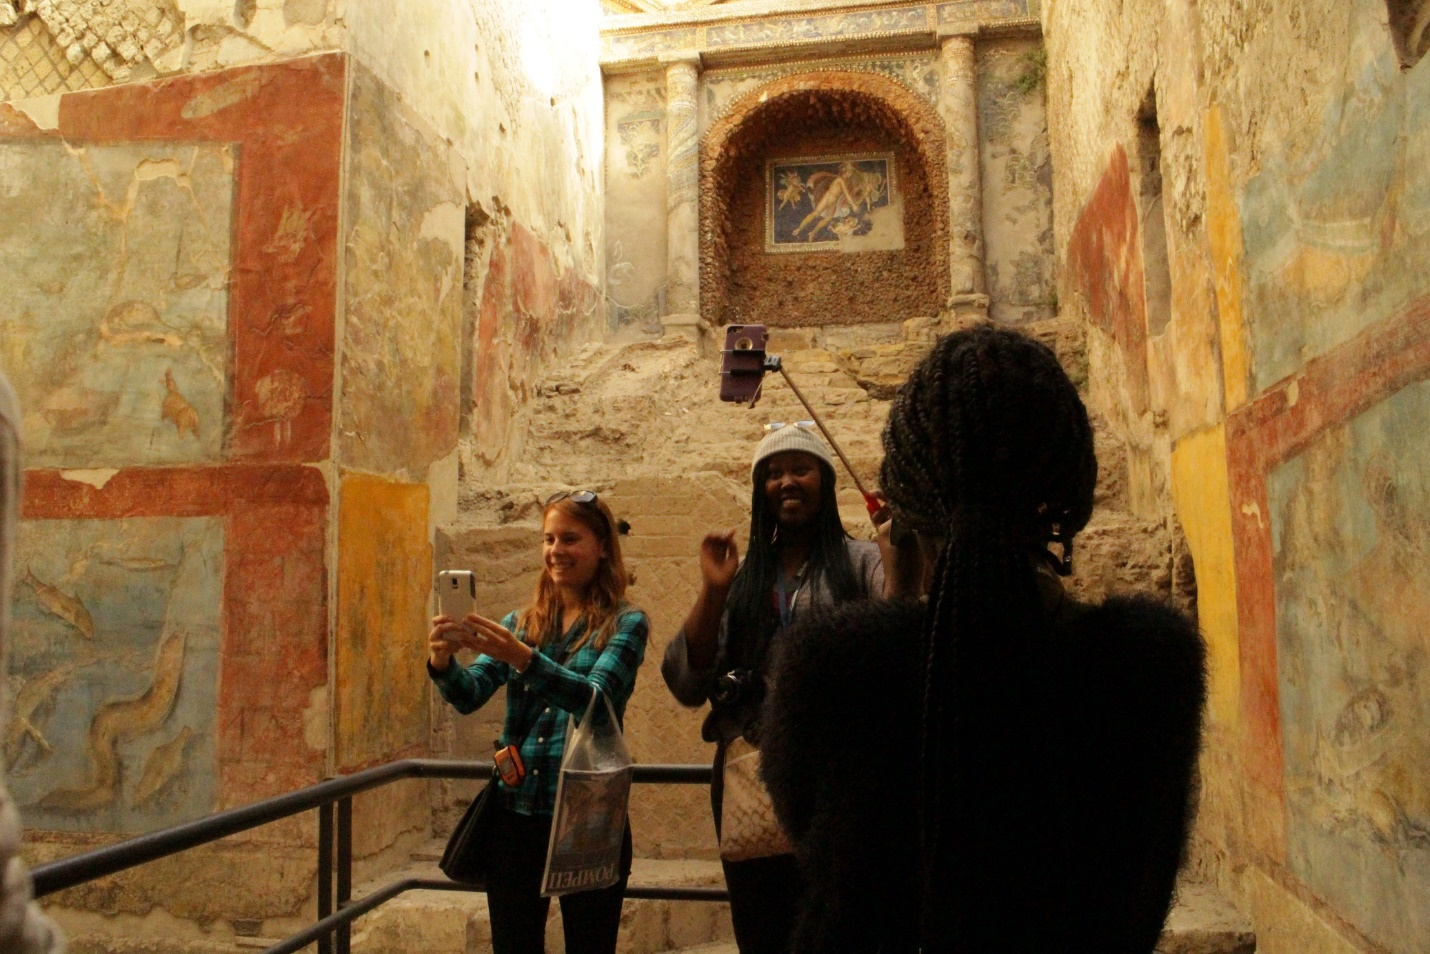 JCU students in Pompeii, jcu student life, jcu weekend trips, study abroad in Rome, Student-Friendly Travel Tips to Try While You Study Abroad, travel tips for students